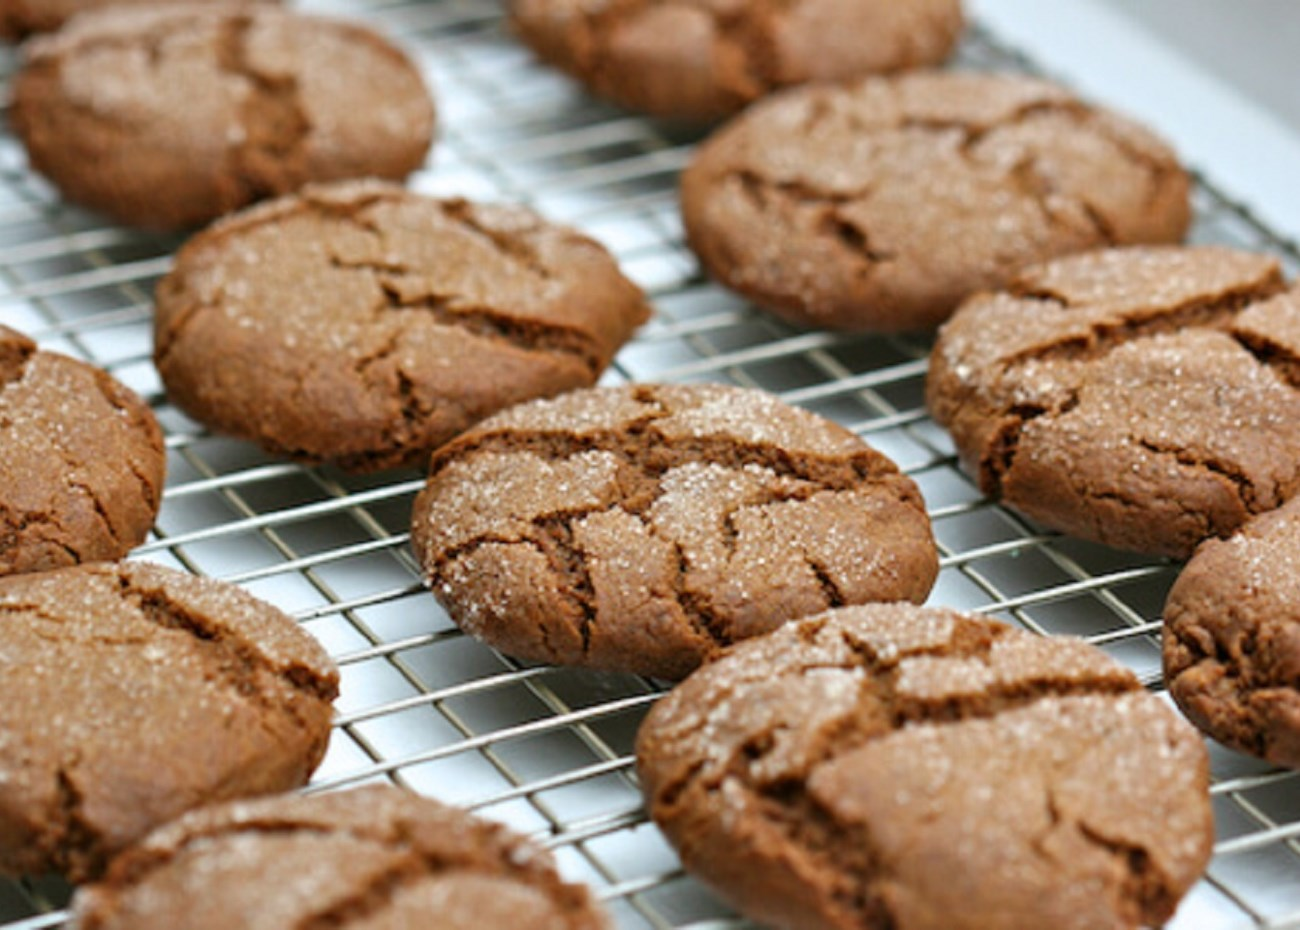 Melissa's Grandma's Ginger Lace Cookies